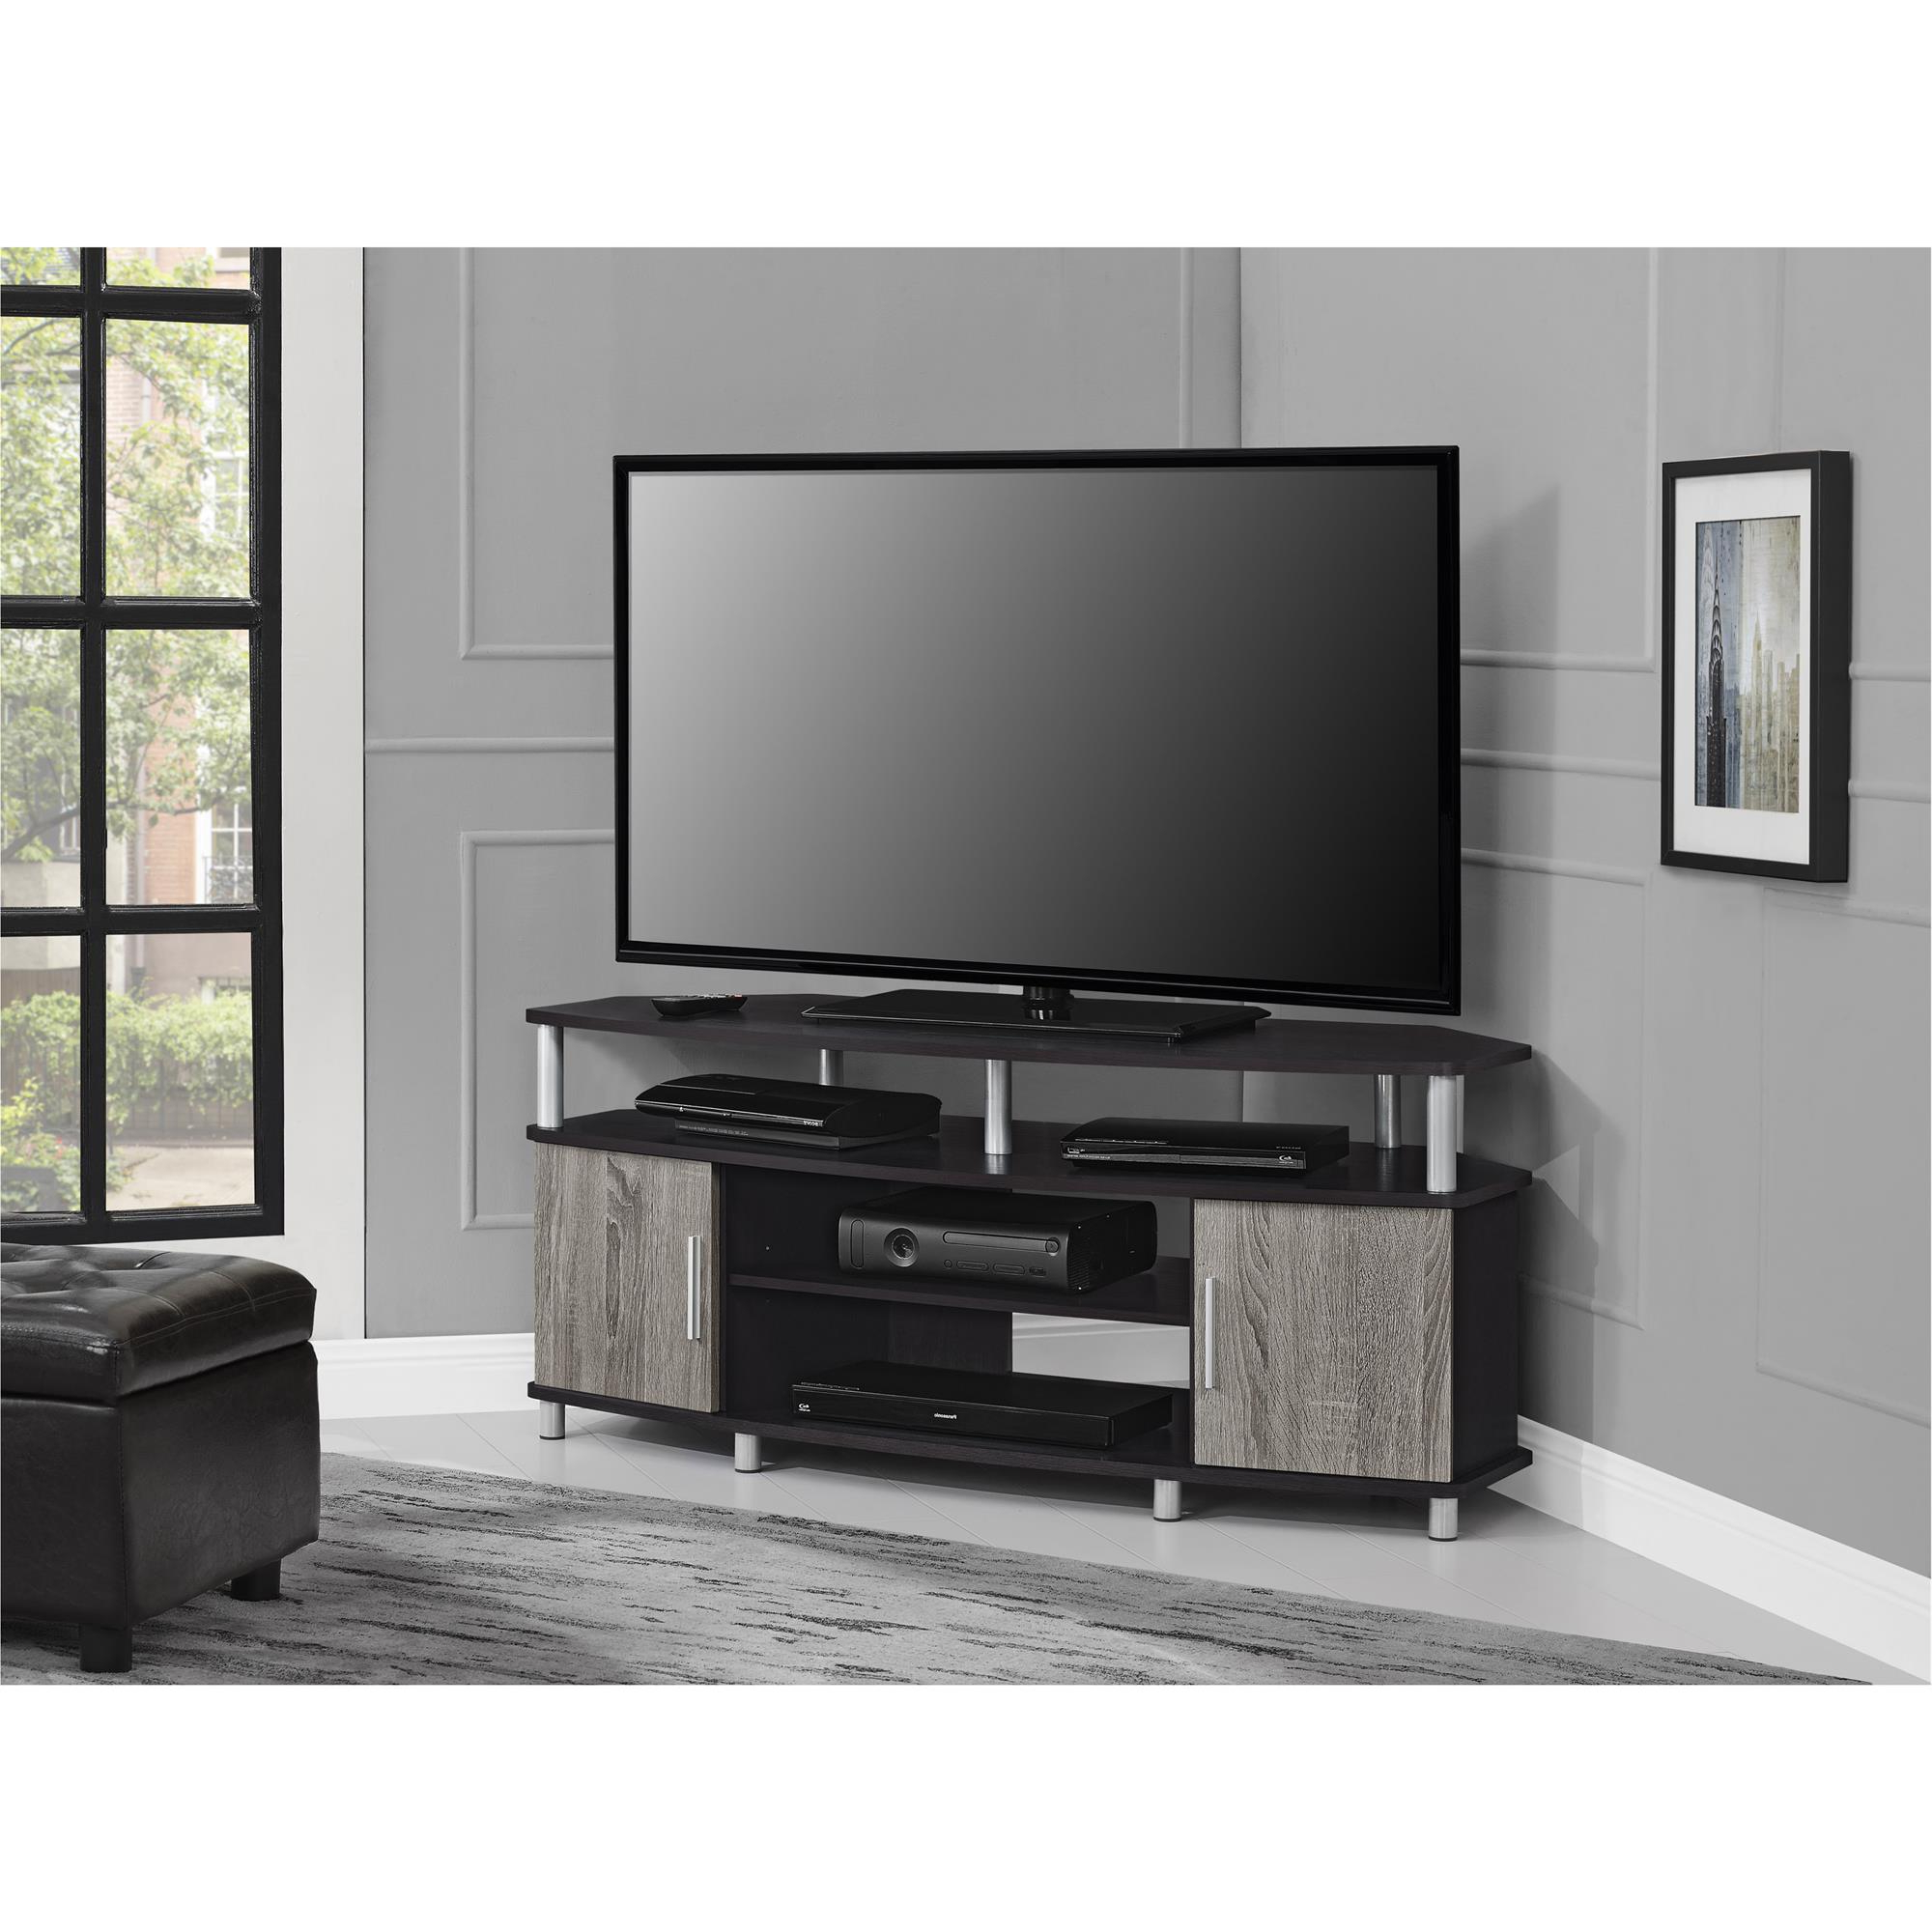 """2017 Black Corner Tv Stands For Tvs Up To 60 Regarding Ameriwood Home Carson Corner Tv Stand For Tvs Up To 50"""" Wide, Black (View 1 of 20)"""